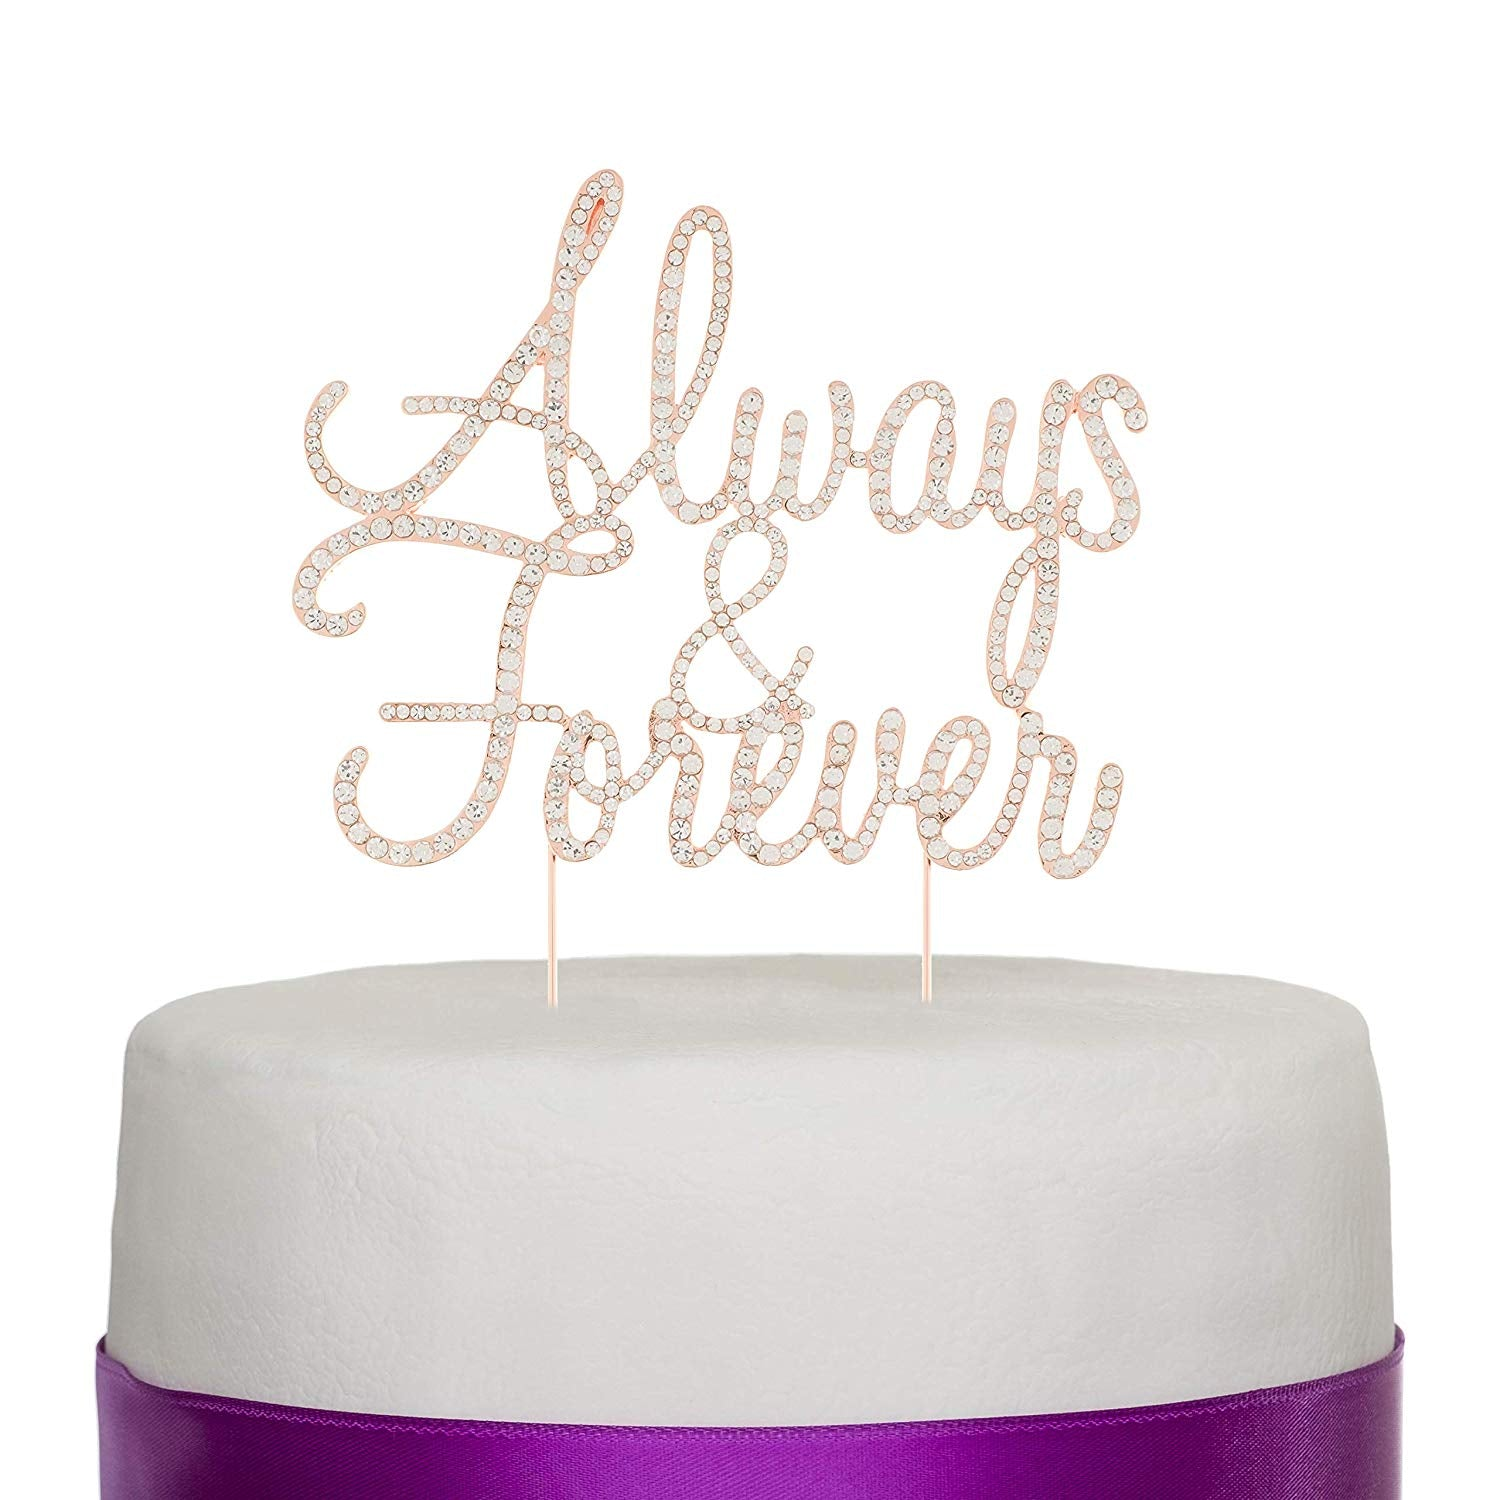 Always and Forever Cake Topper - Rose Gold